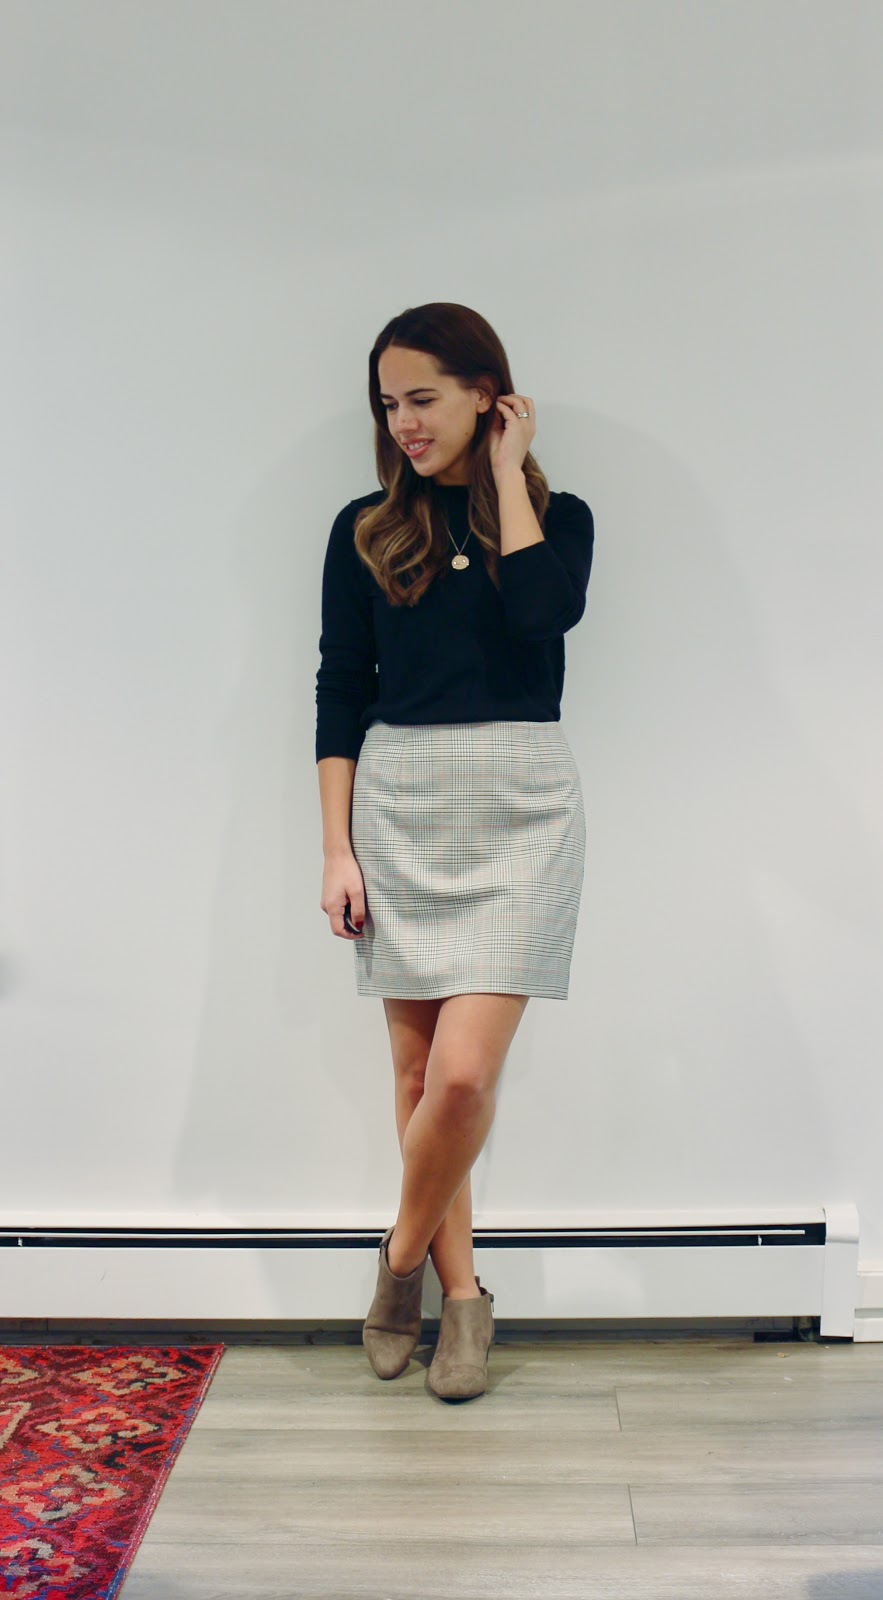 Jules in Flats - Plaid Mini Skirt with Ankle Boots (Business Casual Fall Workwear on a Budget)